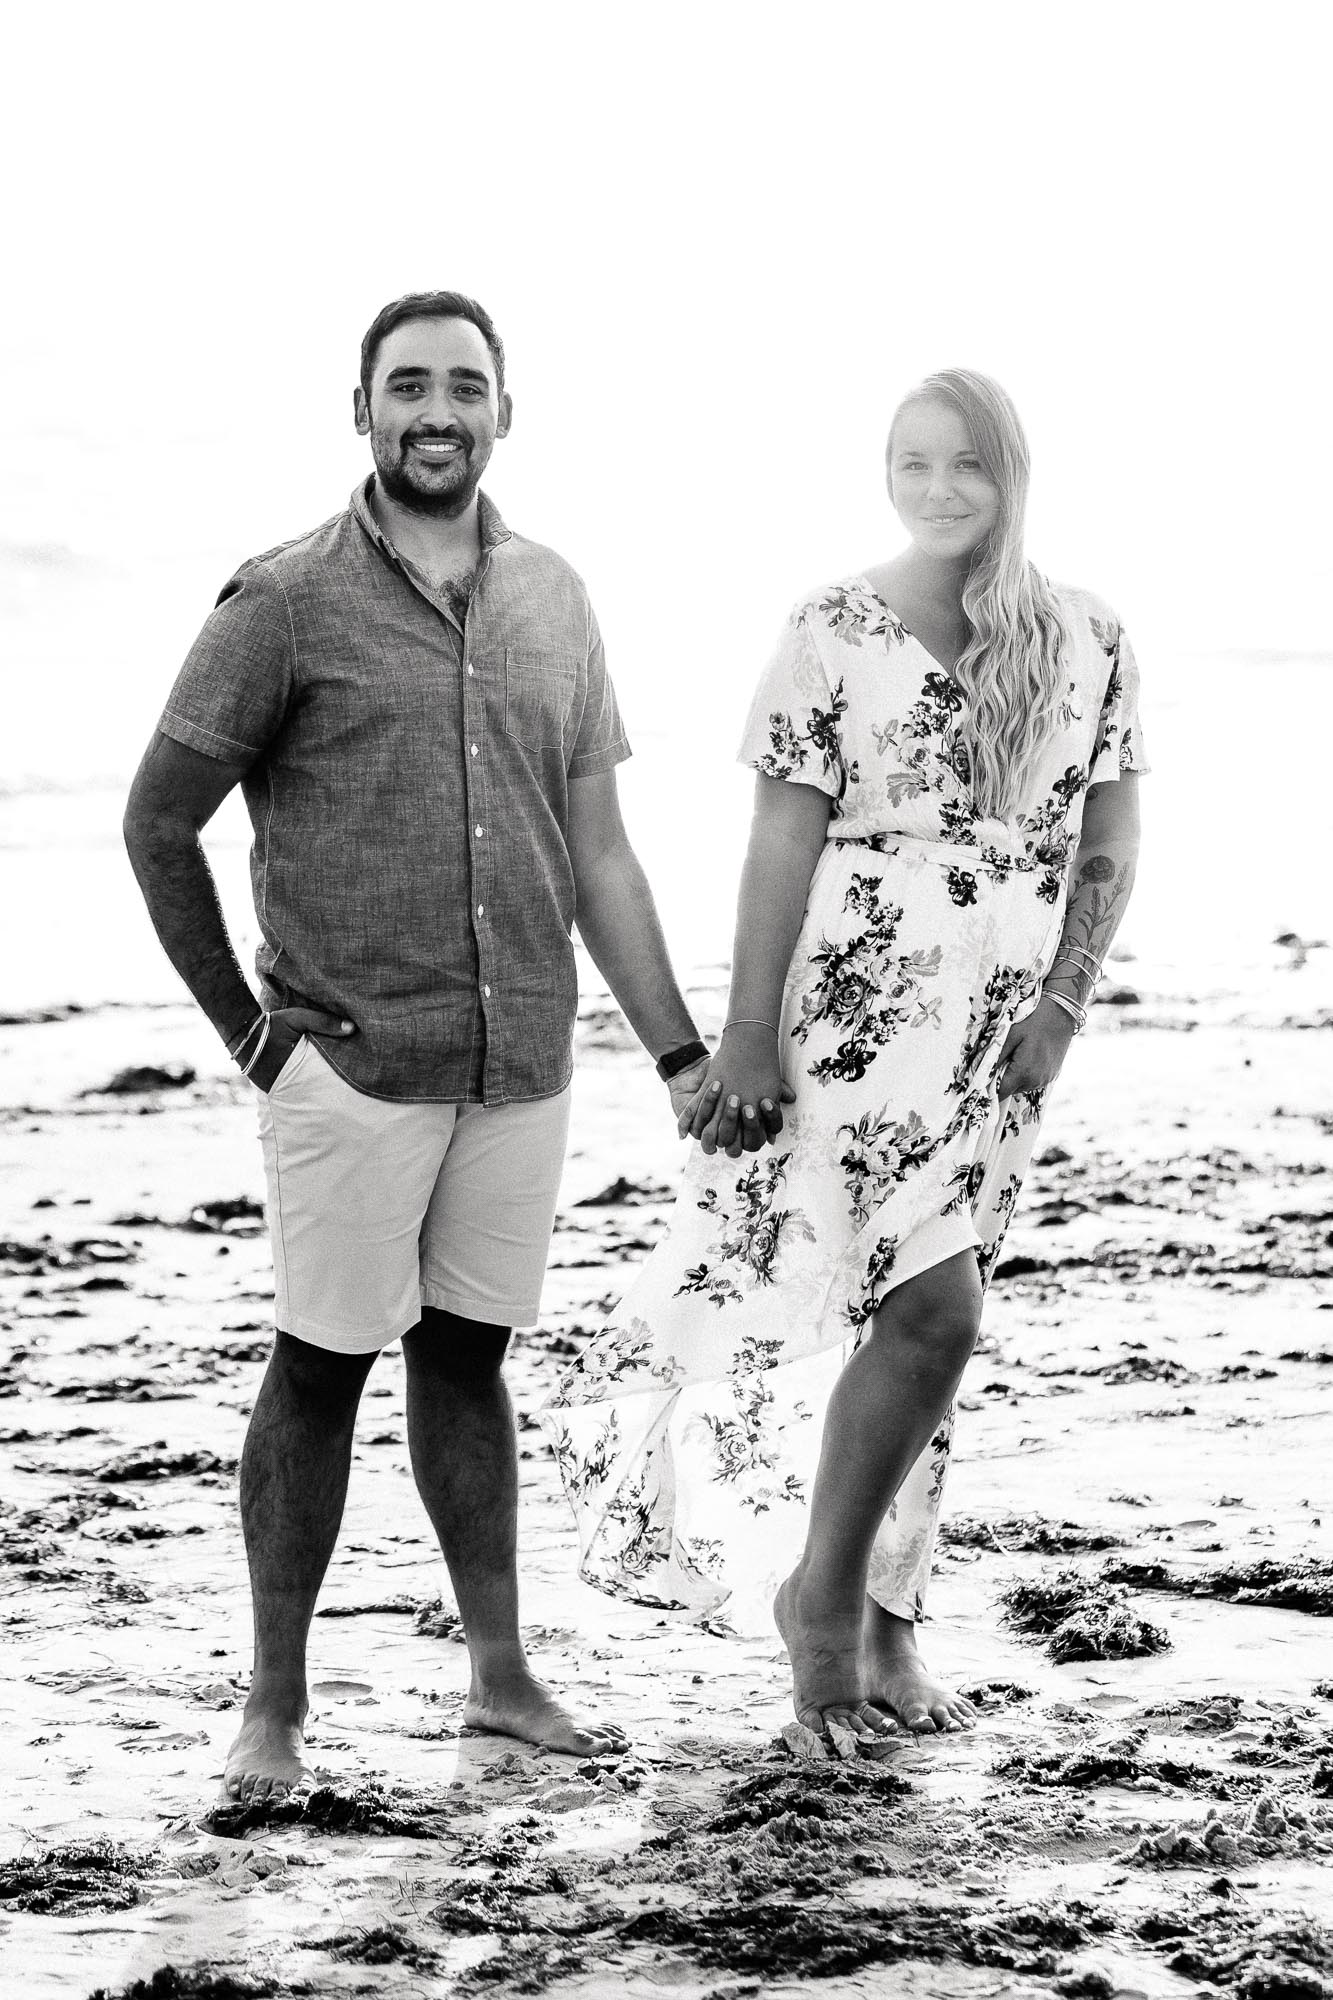 Justine_Puneet_Cardiff_Engagement_Session_133.jpg